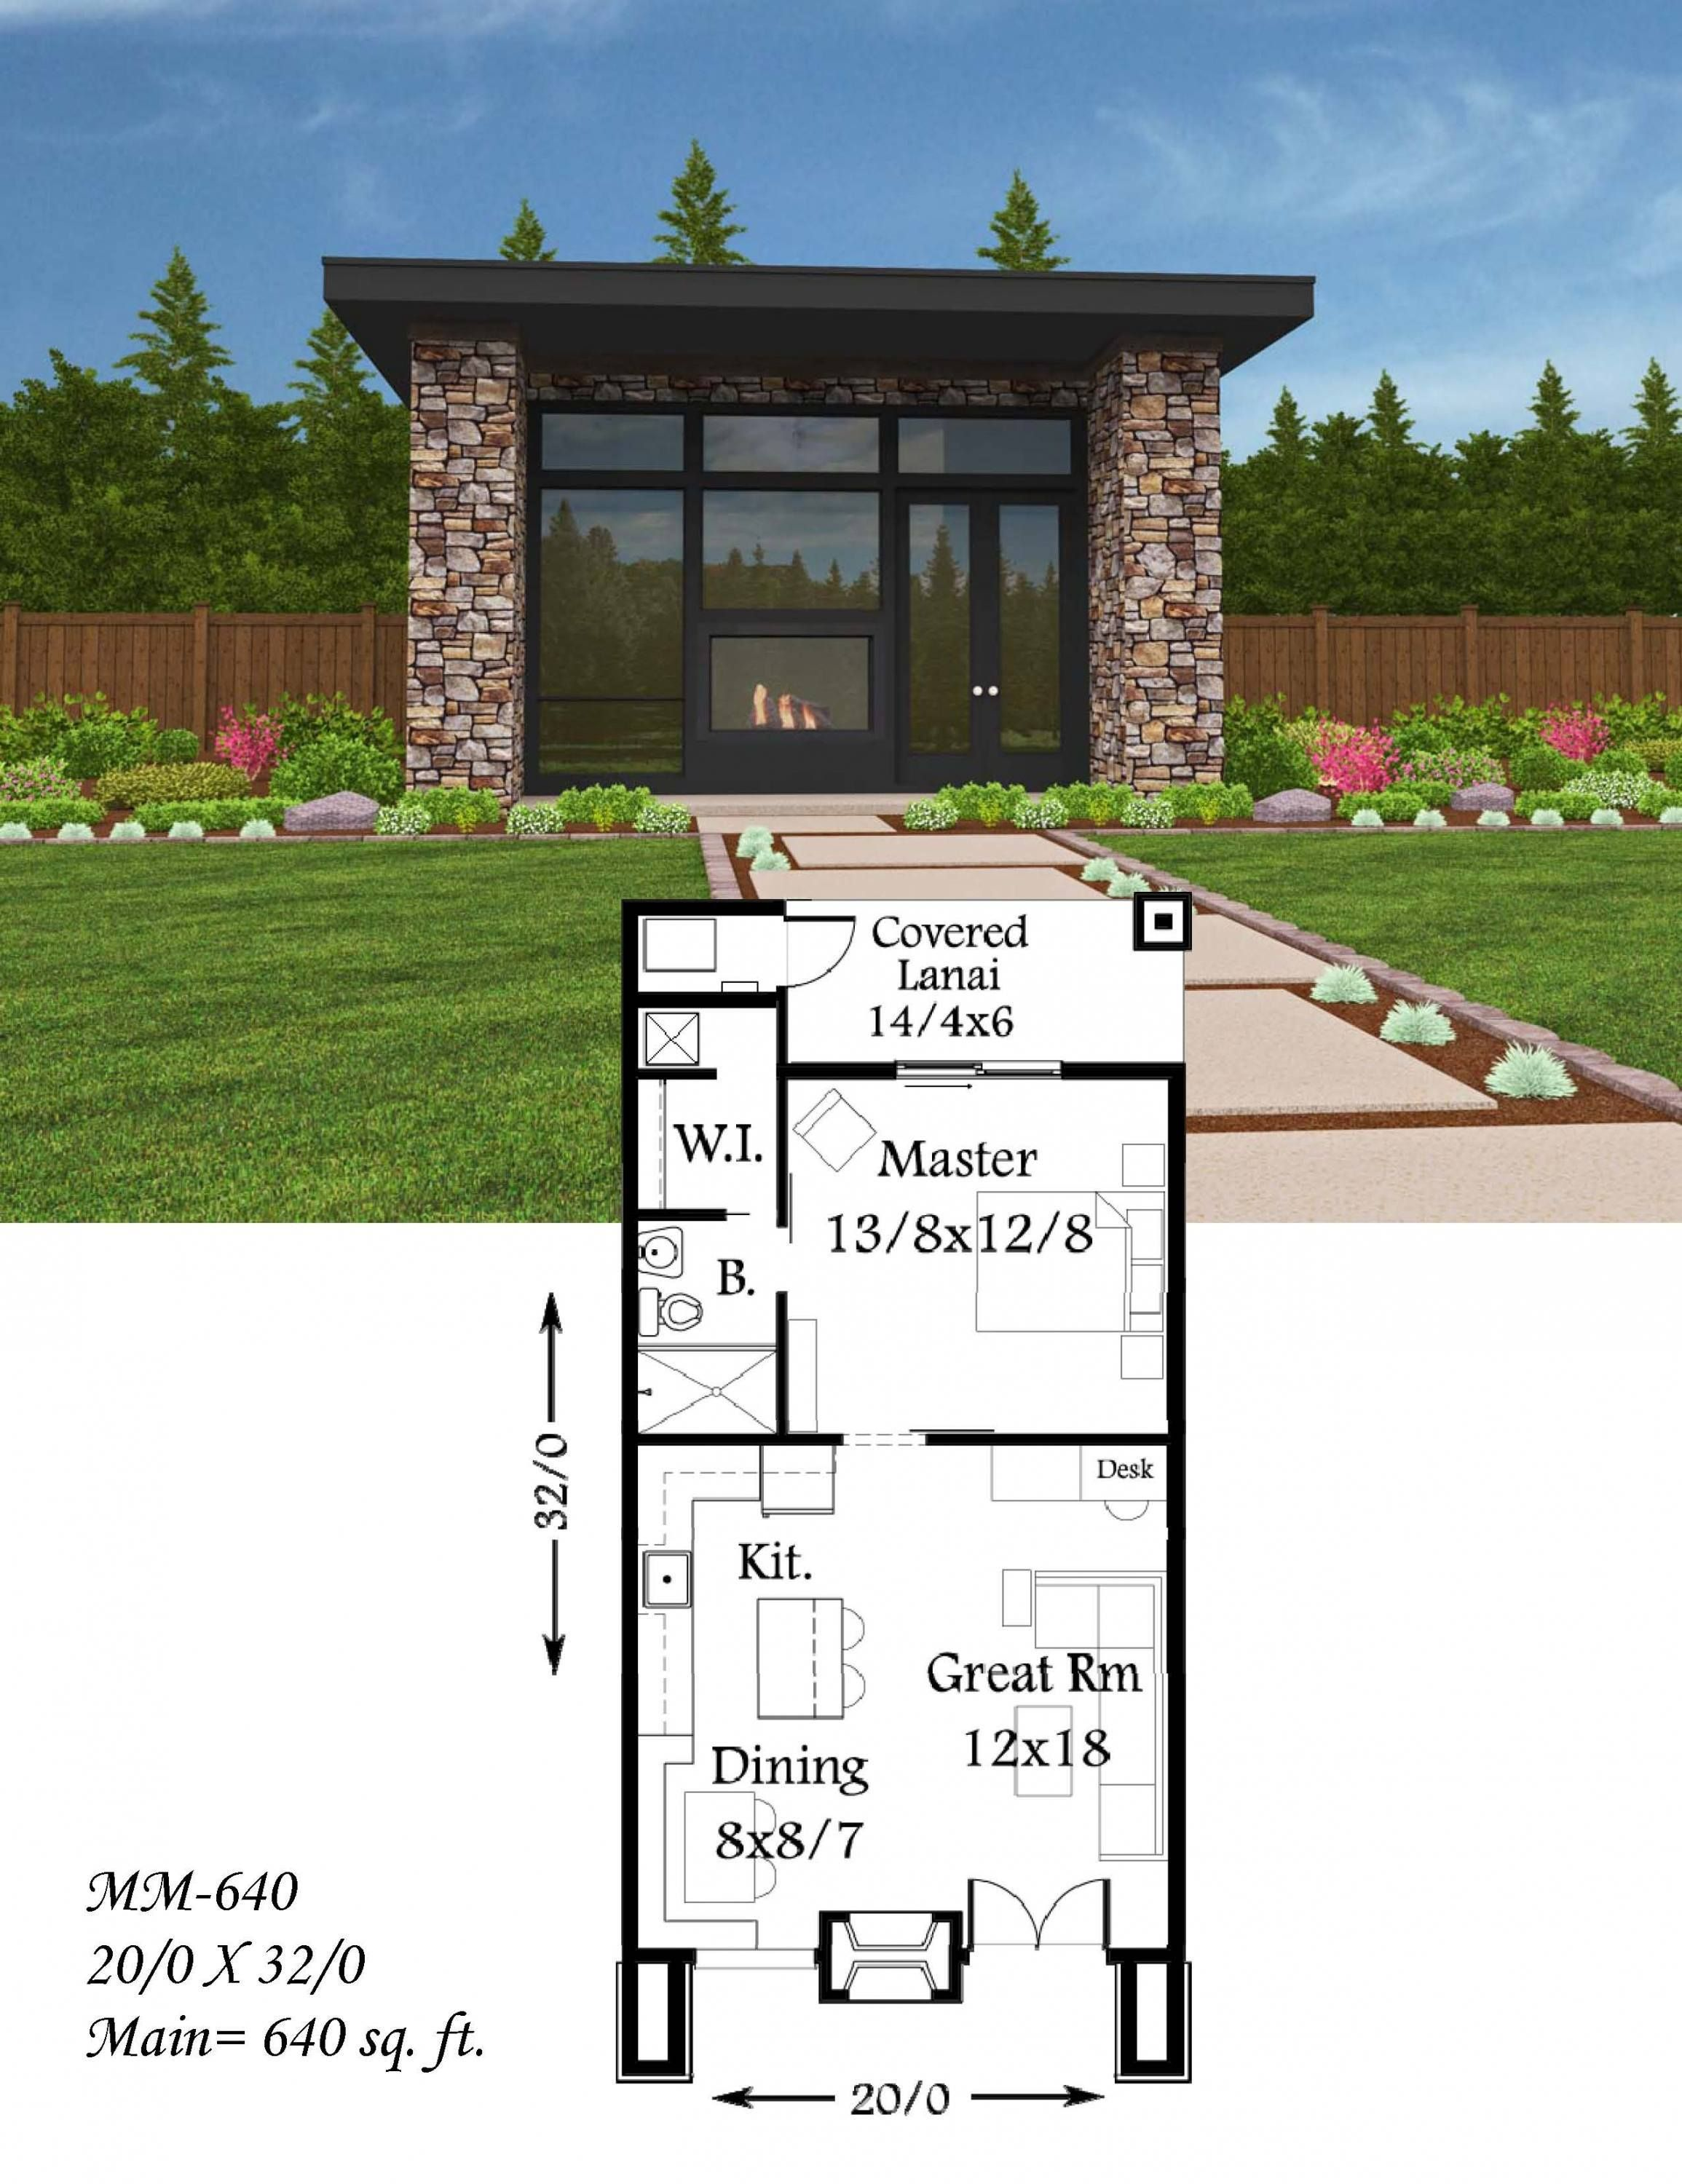 ea6456f9dbd42c956c6cb63fdc93ecc2 - 35+ Small Modern House Designs And Floor Plans Background